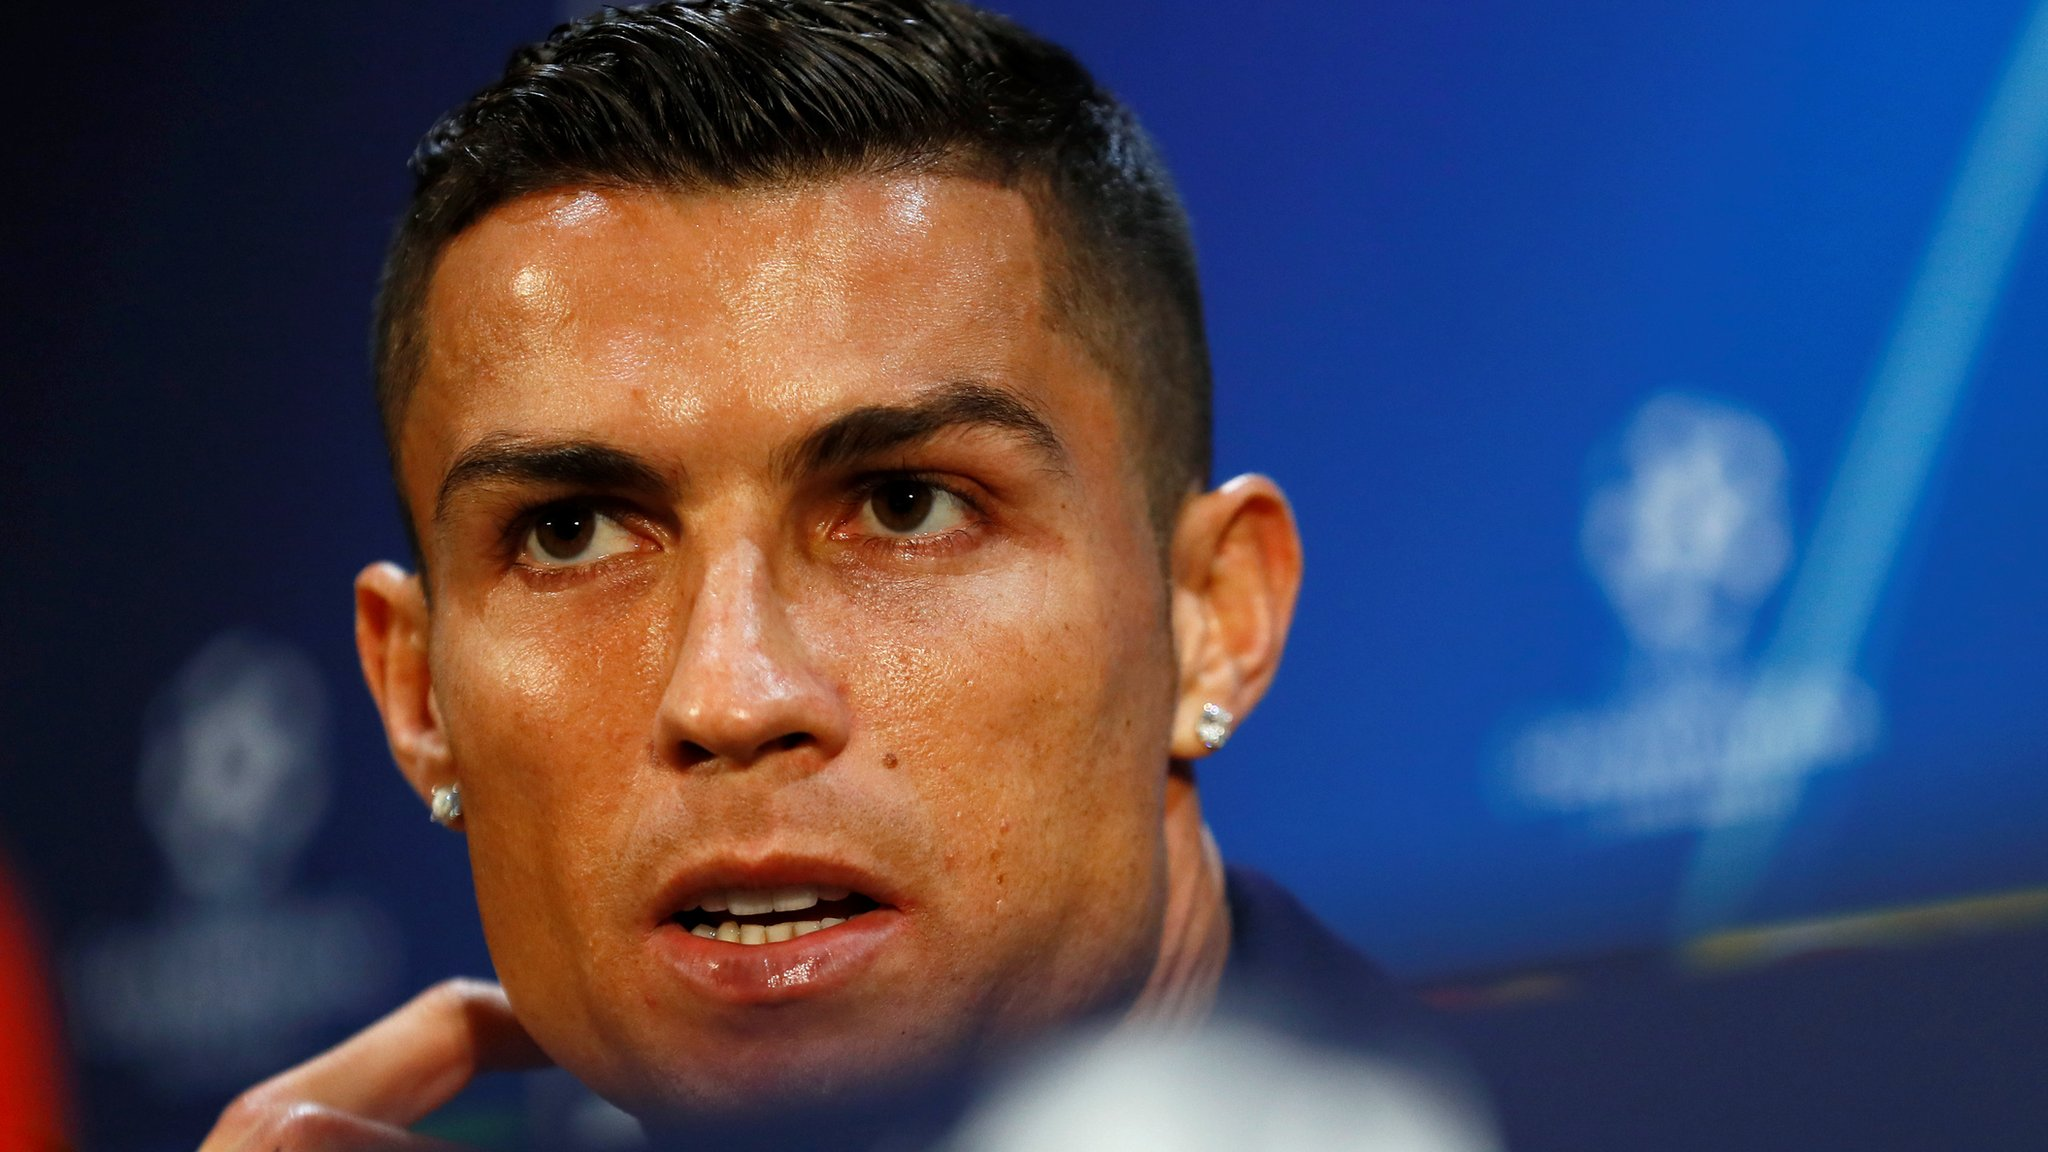 Ronaldo says lawyers 'confident' over rape allegation